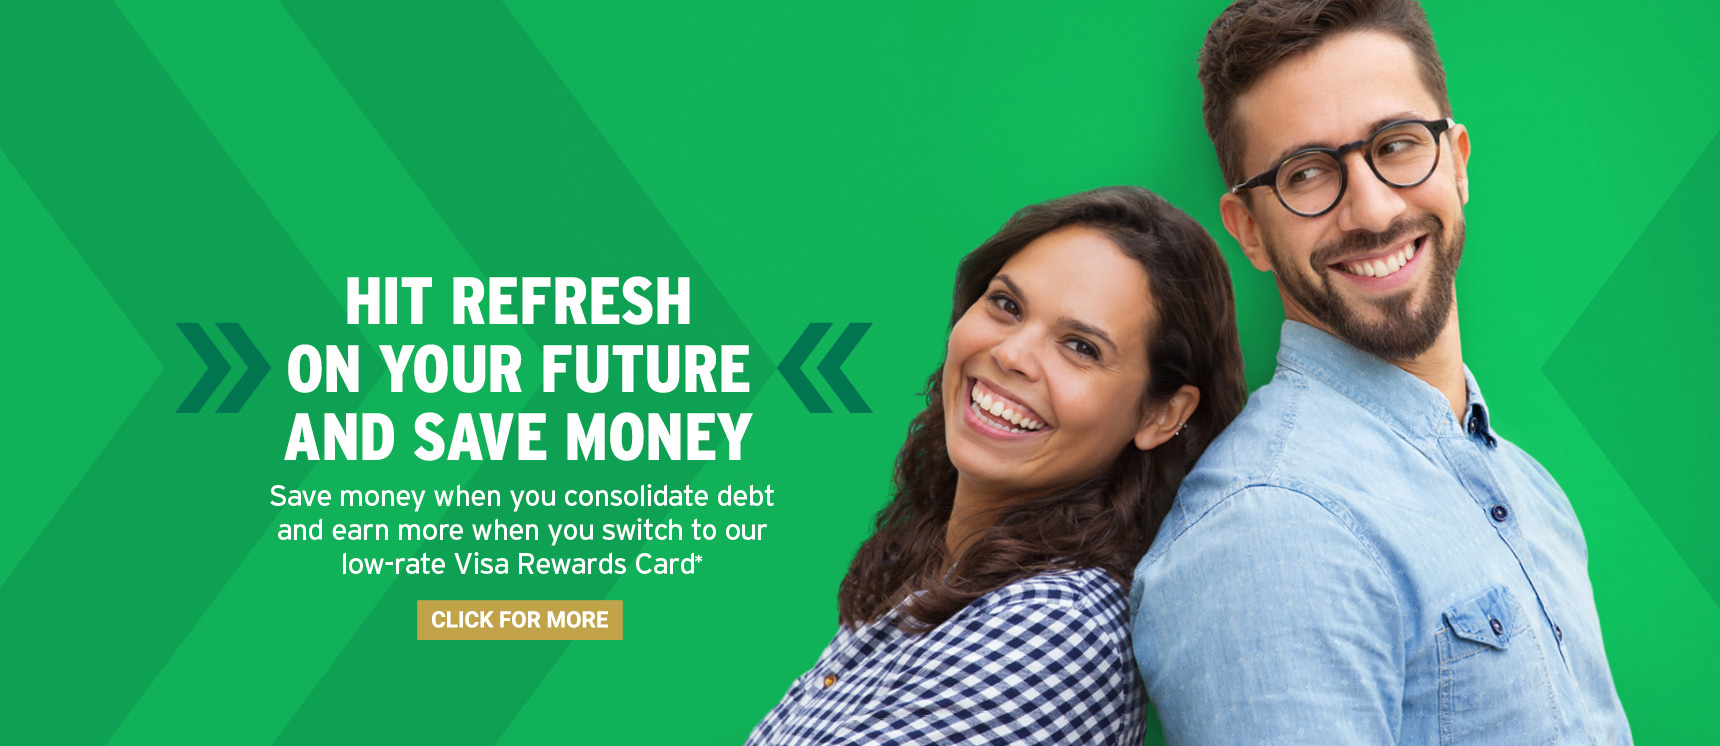 Happy couple that just went to Liberty Savings for a new Visa Credit Card and Debt Consolidation